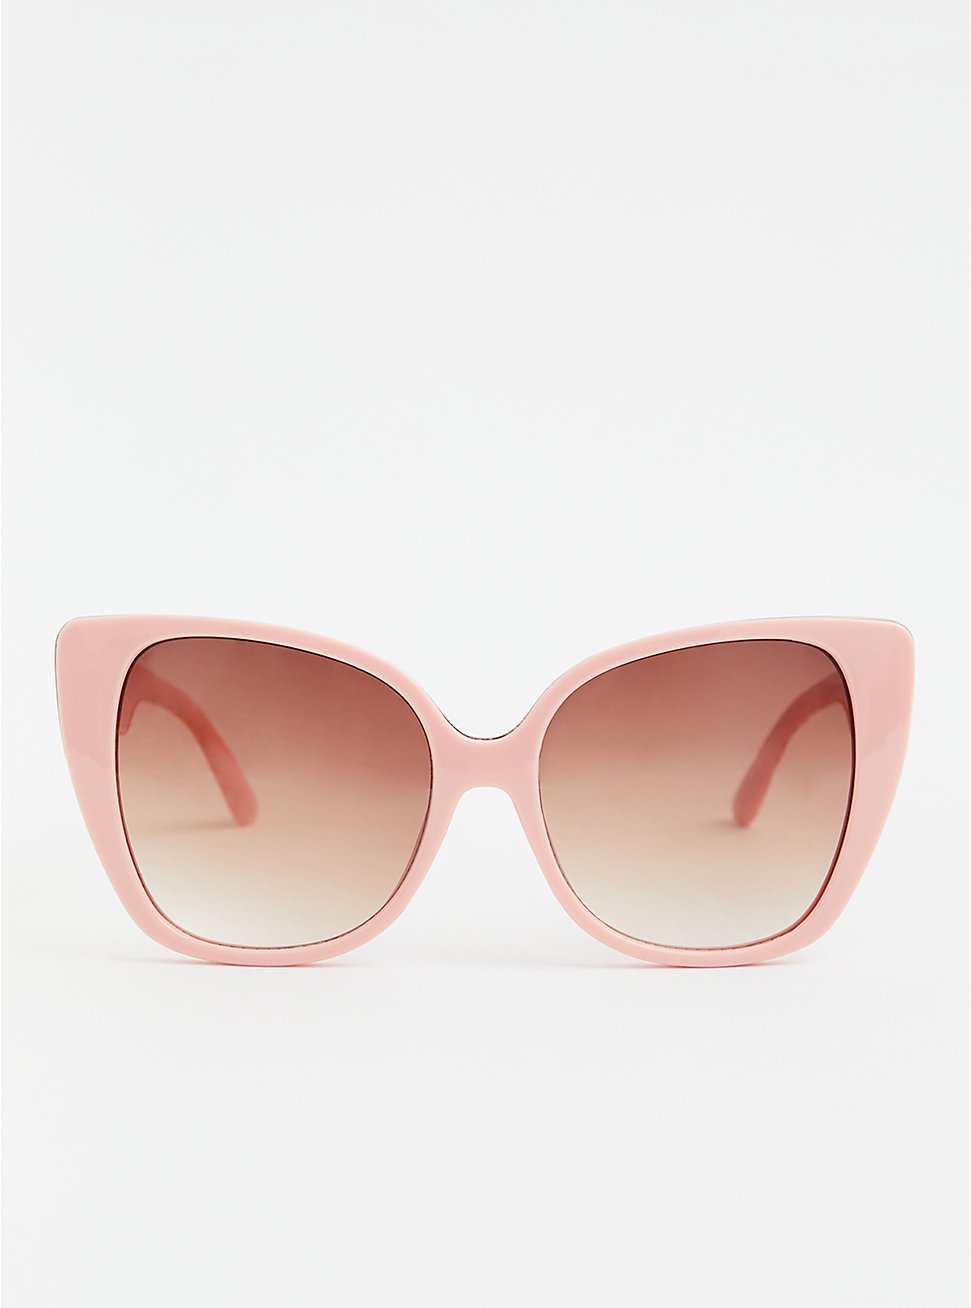 Light Pink Cat Eye Sunglasses, , hi-res